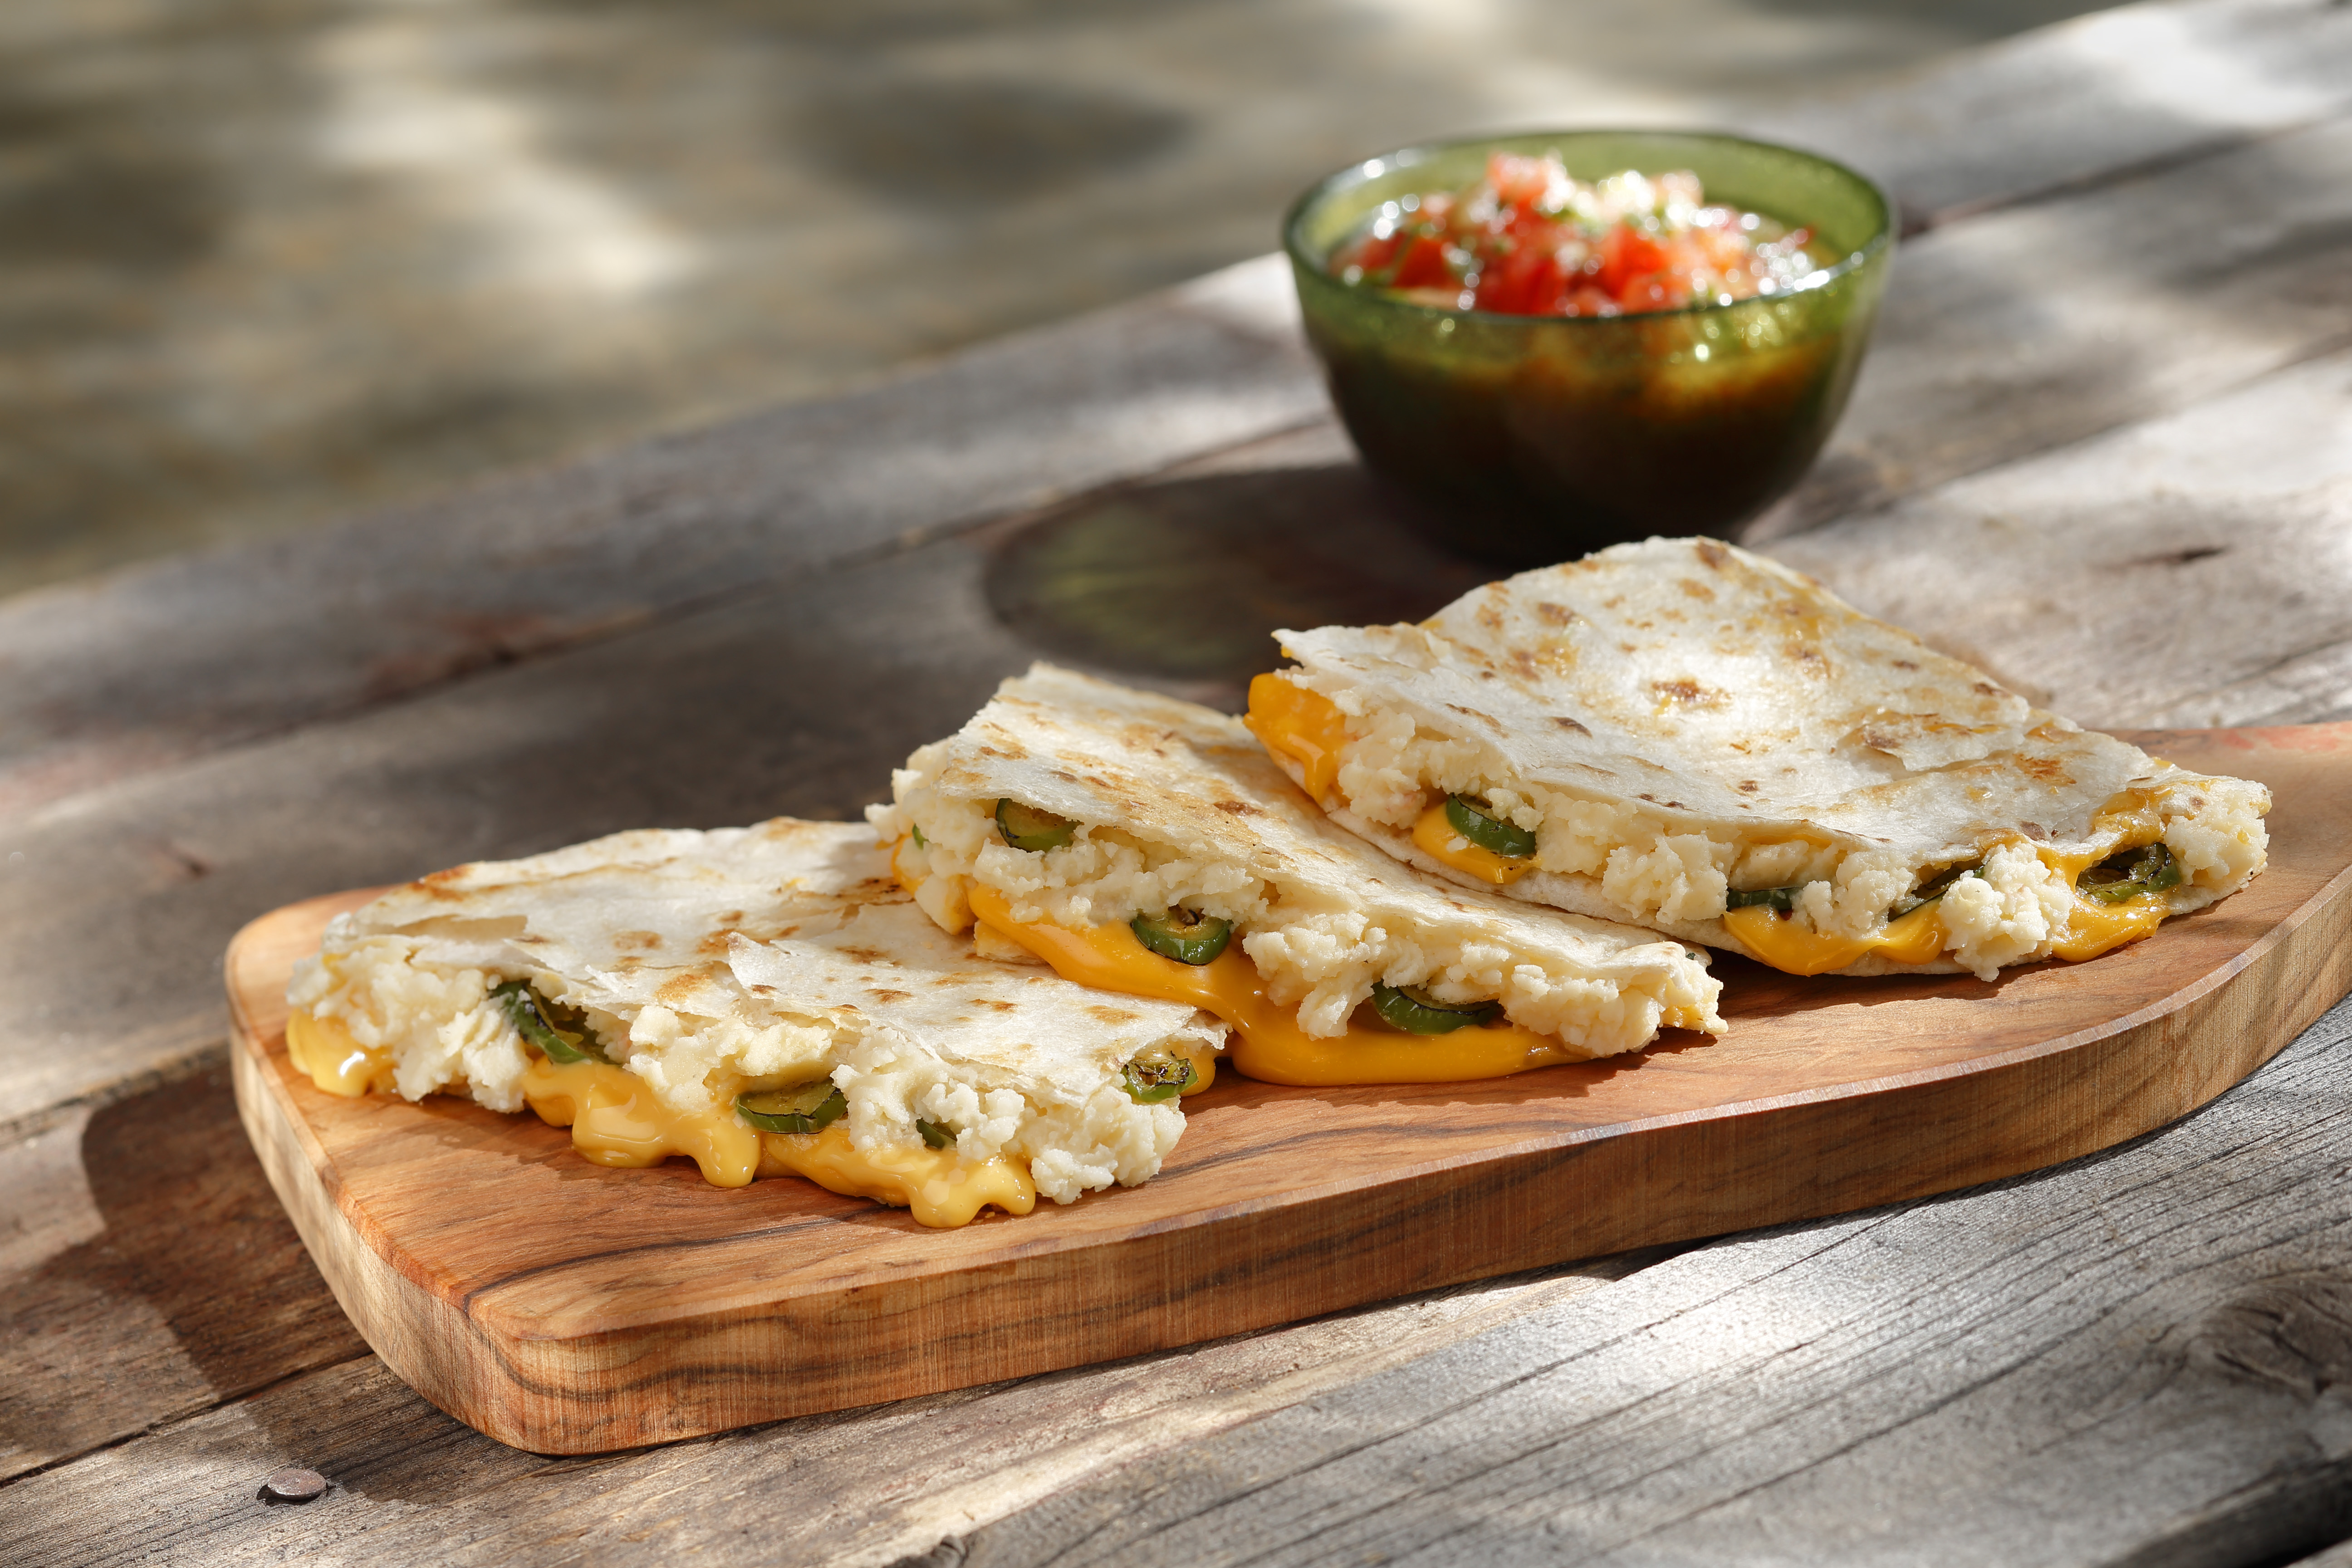 Bacon & Cheddar Chipotle Quesadillas